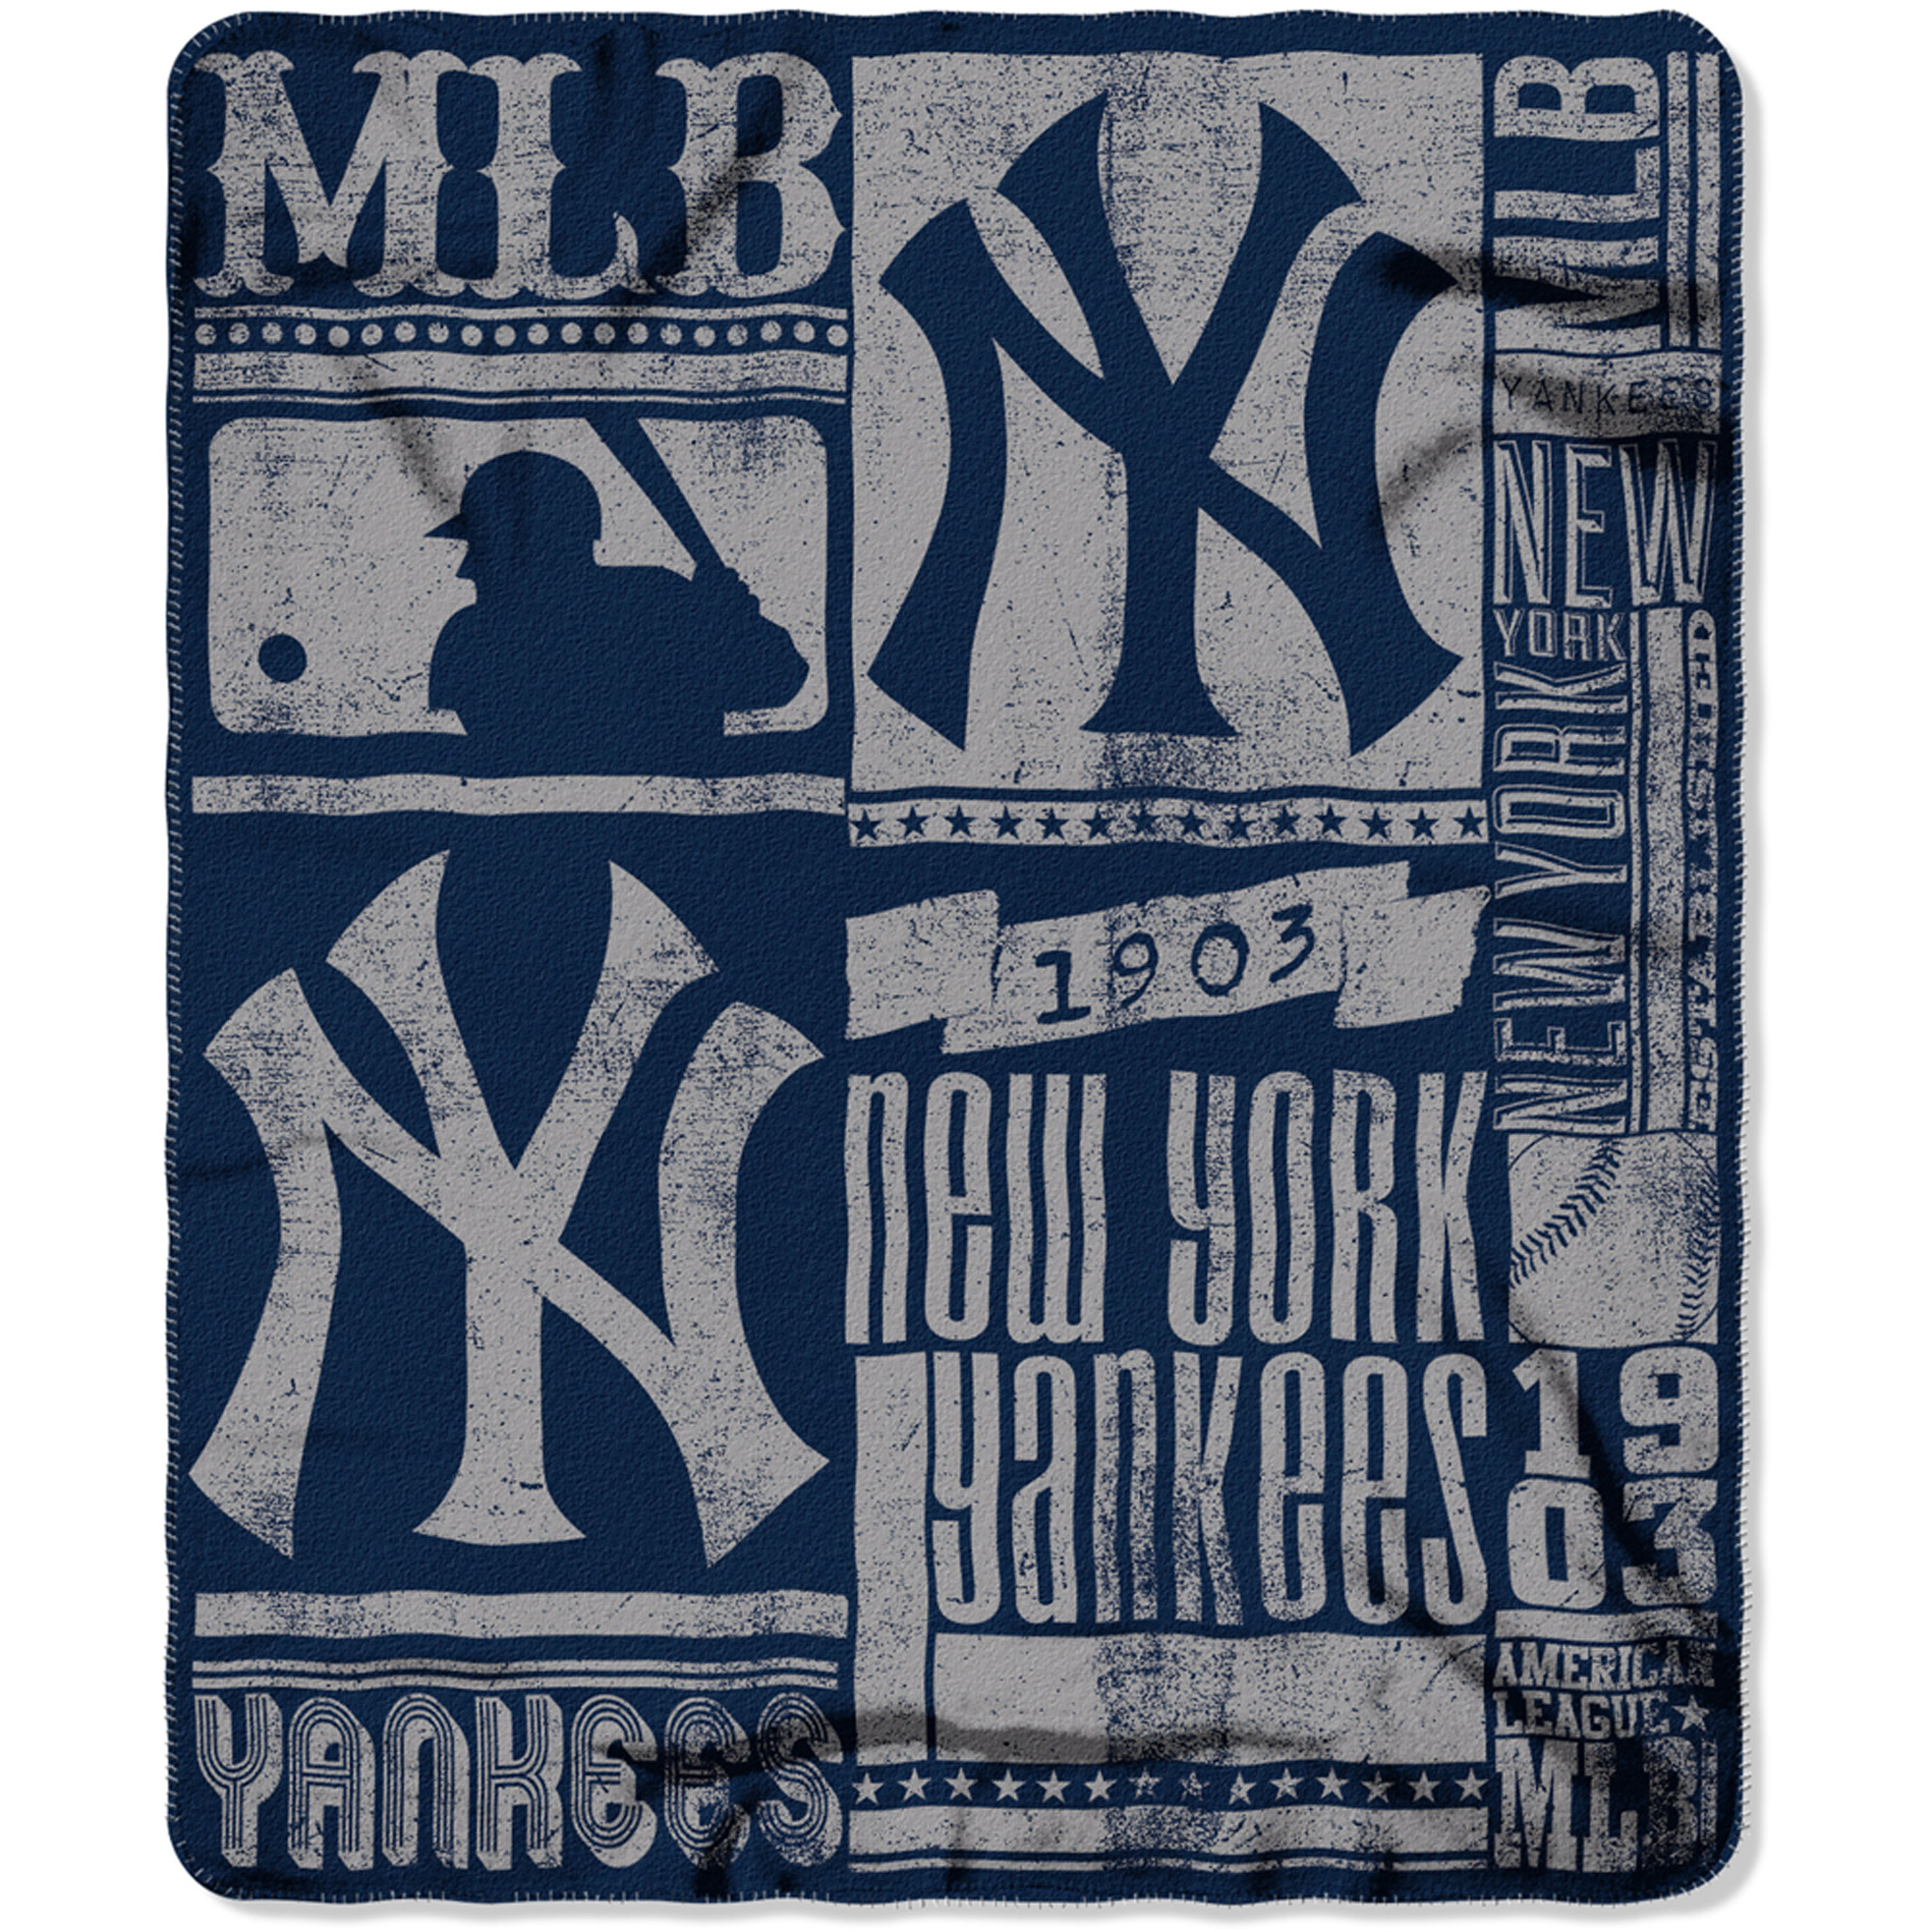 MLB New York Yankees Basic Cap   Hat by Fan Favorite - Walmart.com e4cf7065a447